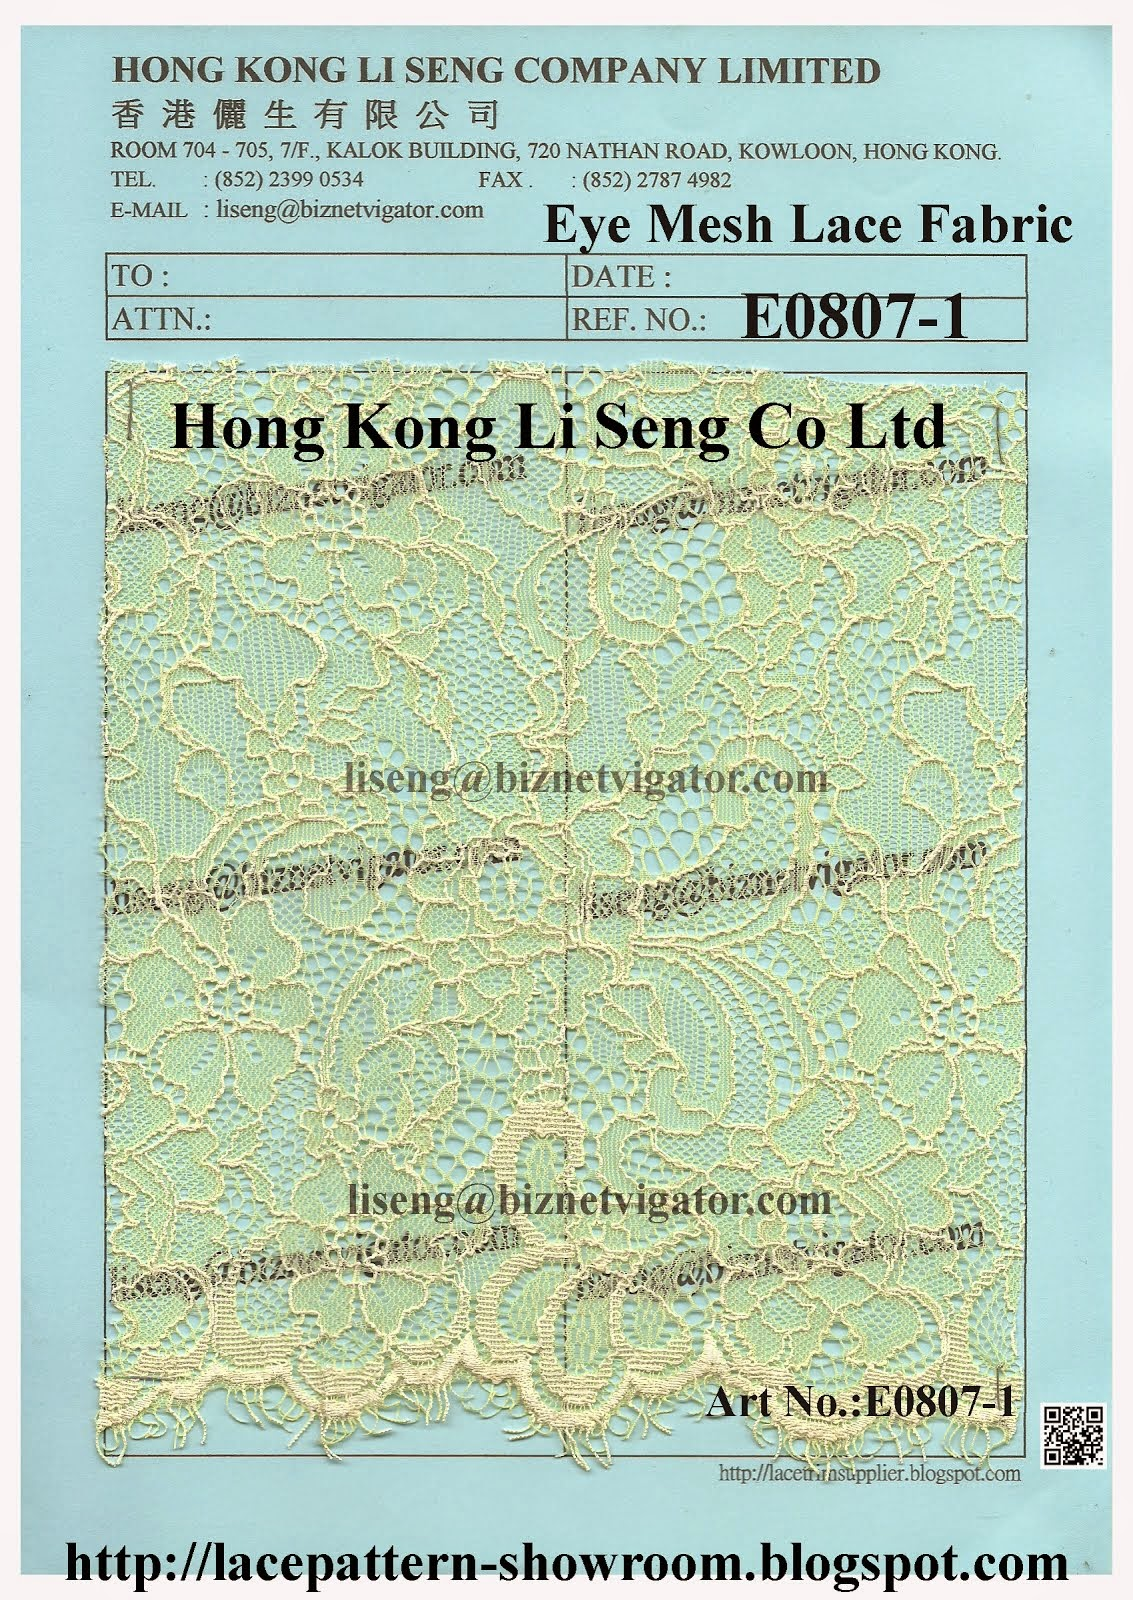 Eye Mesh Lace Fabric Factory - Hong Kong Li Seng Co Ltd